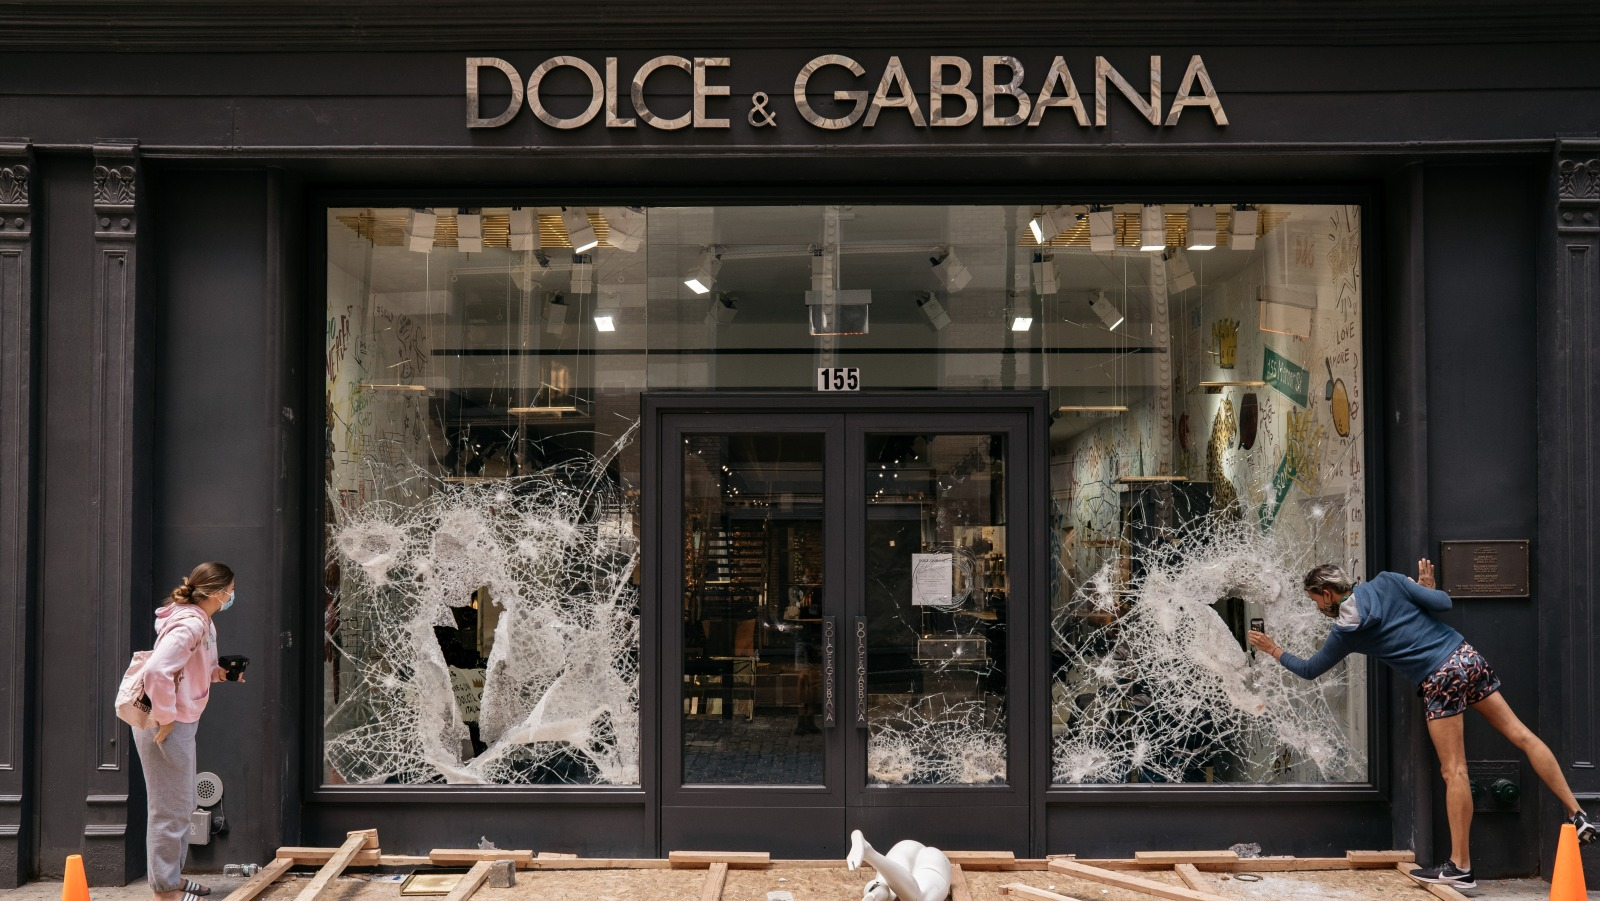 The truth about Dolce & Gabbana